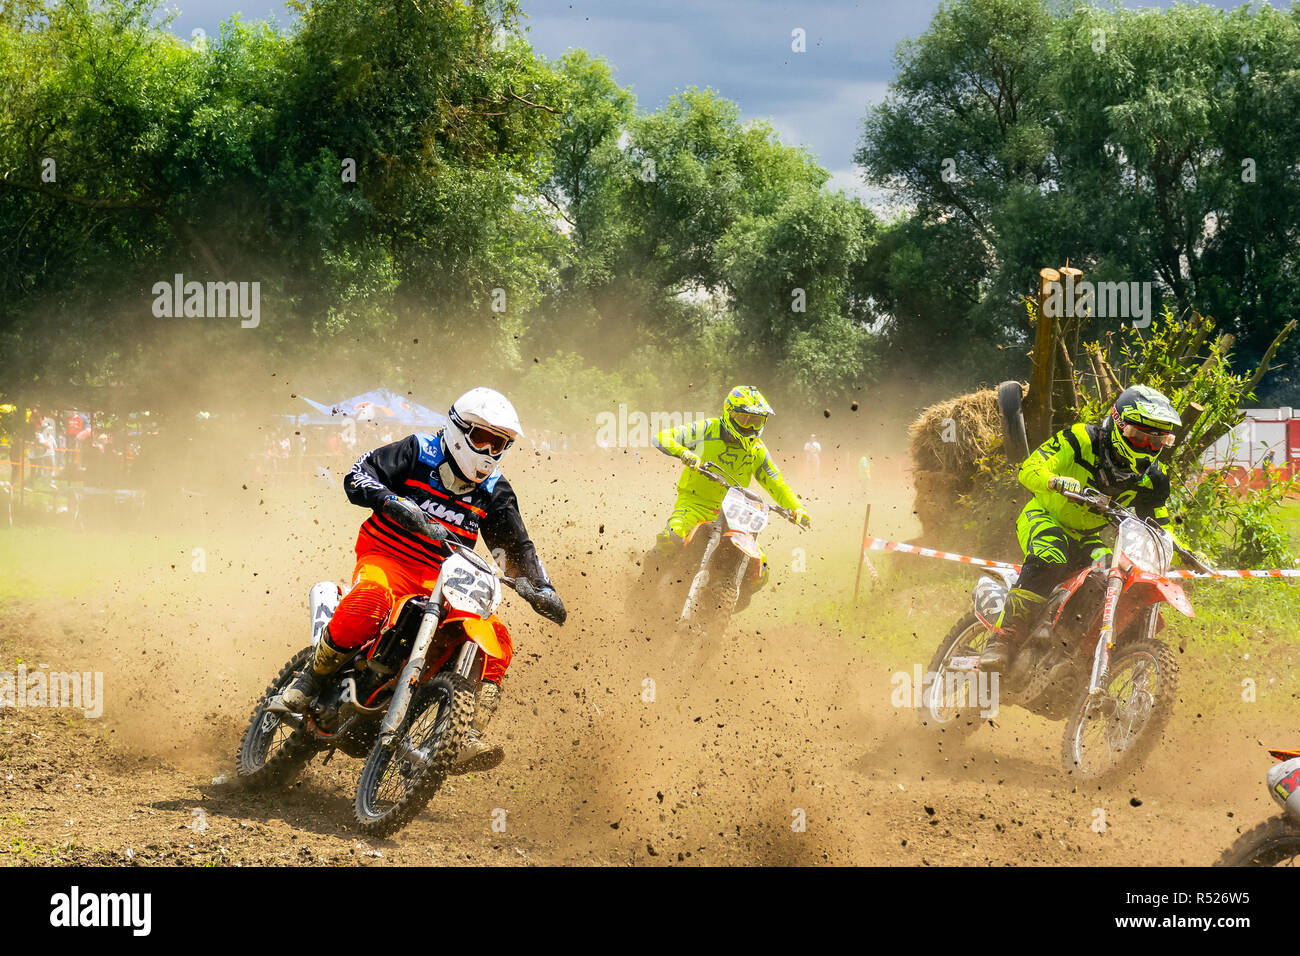 Uzhgorod, Ukraine - JUN 26, 2018: TransCarpathian Open Regional Motocross Championship. extreme sport competition. participants accelerating after sta - Stock Image